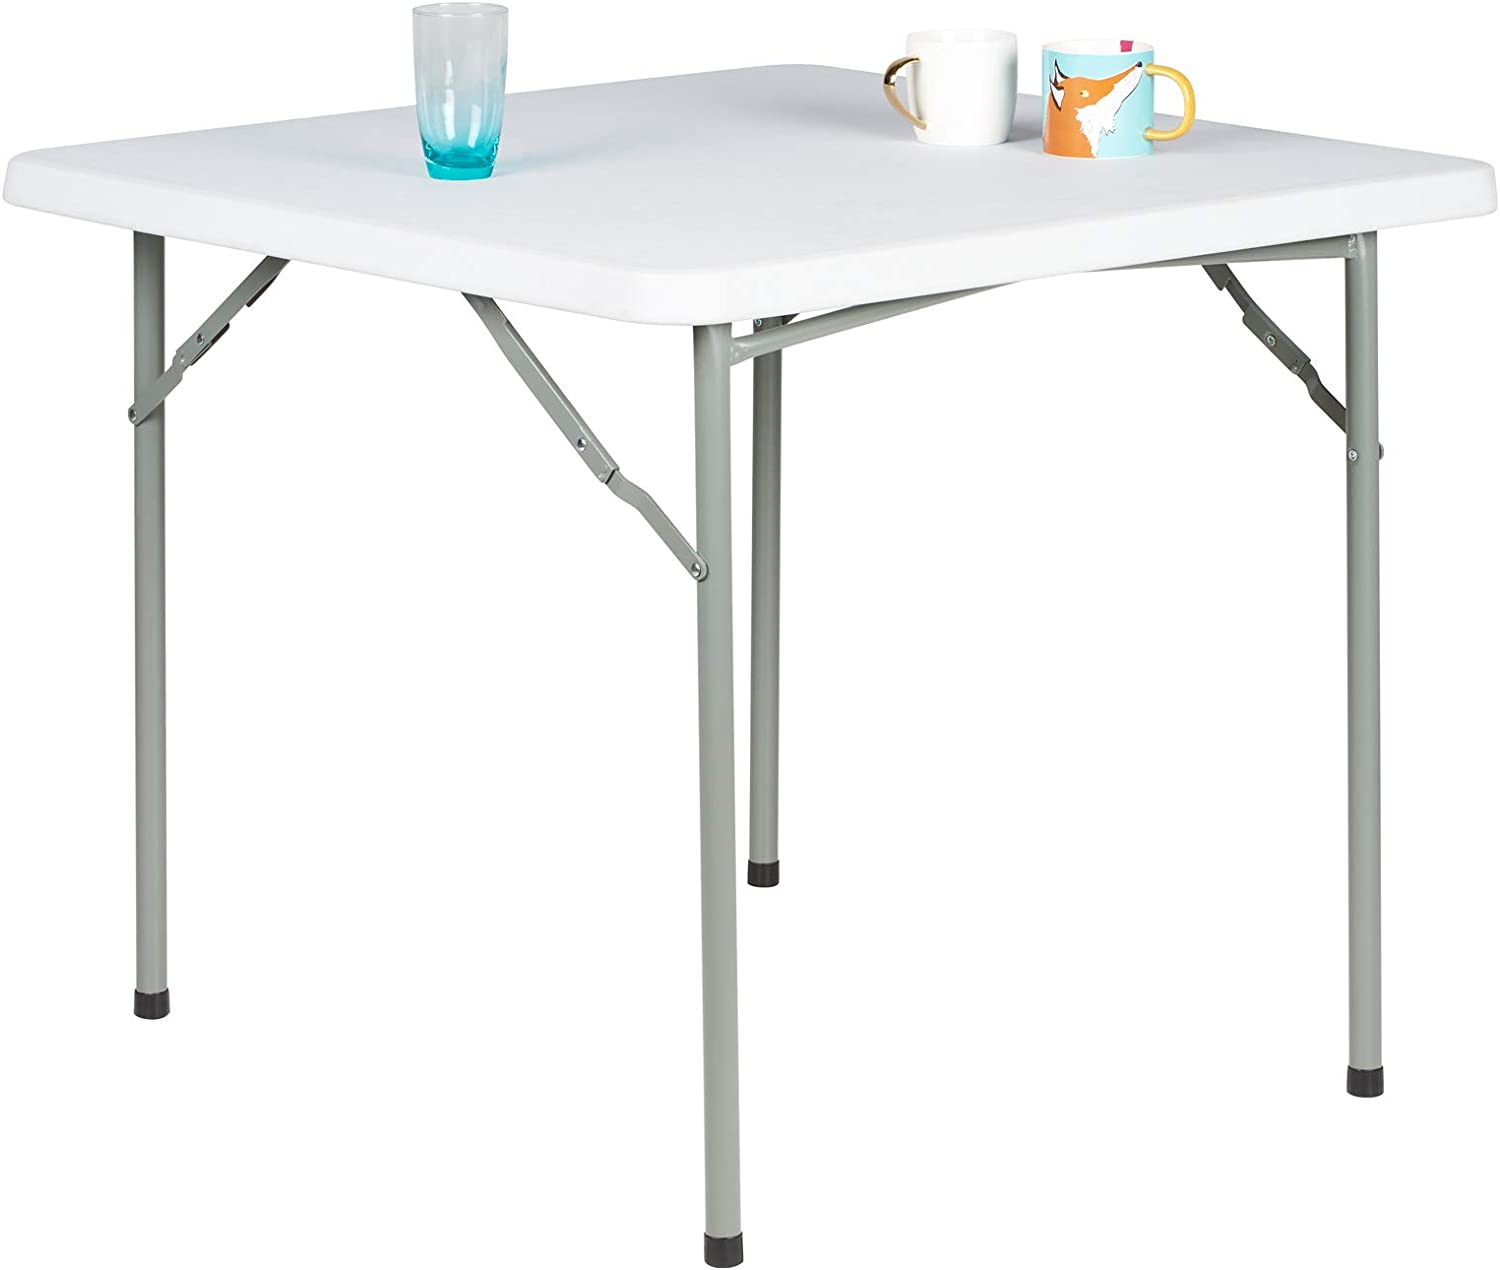 Hartleys 3ft Handy Square Folding Table Suitable For Indoor Or Outdoor Use Amazon Co Uk Garden Outdoors